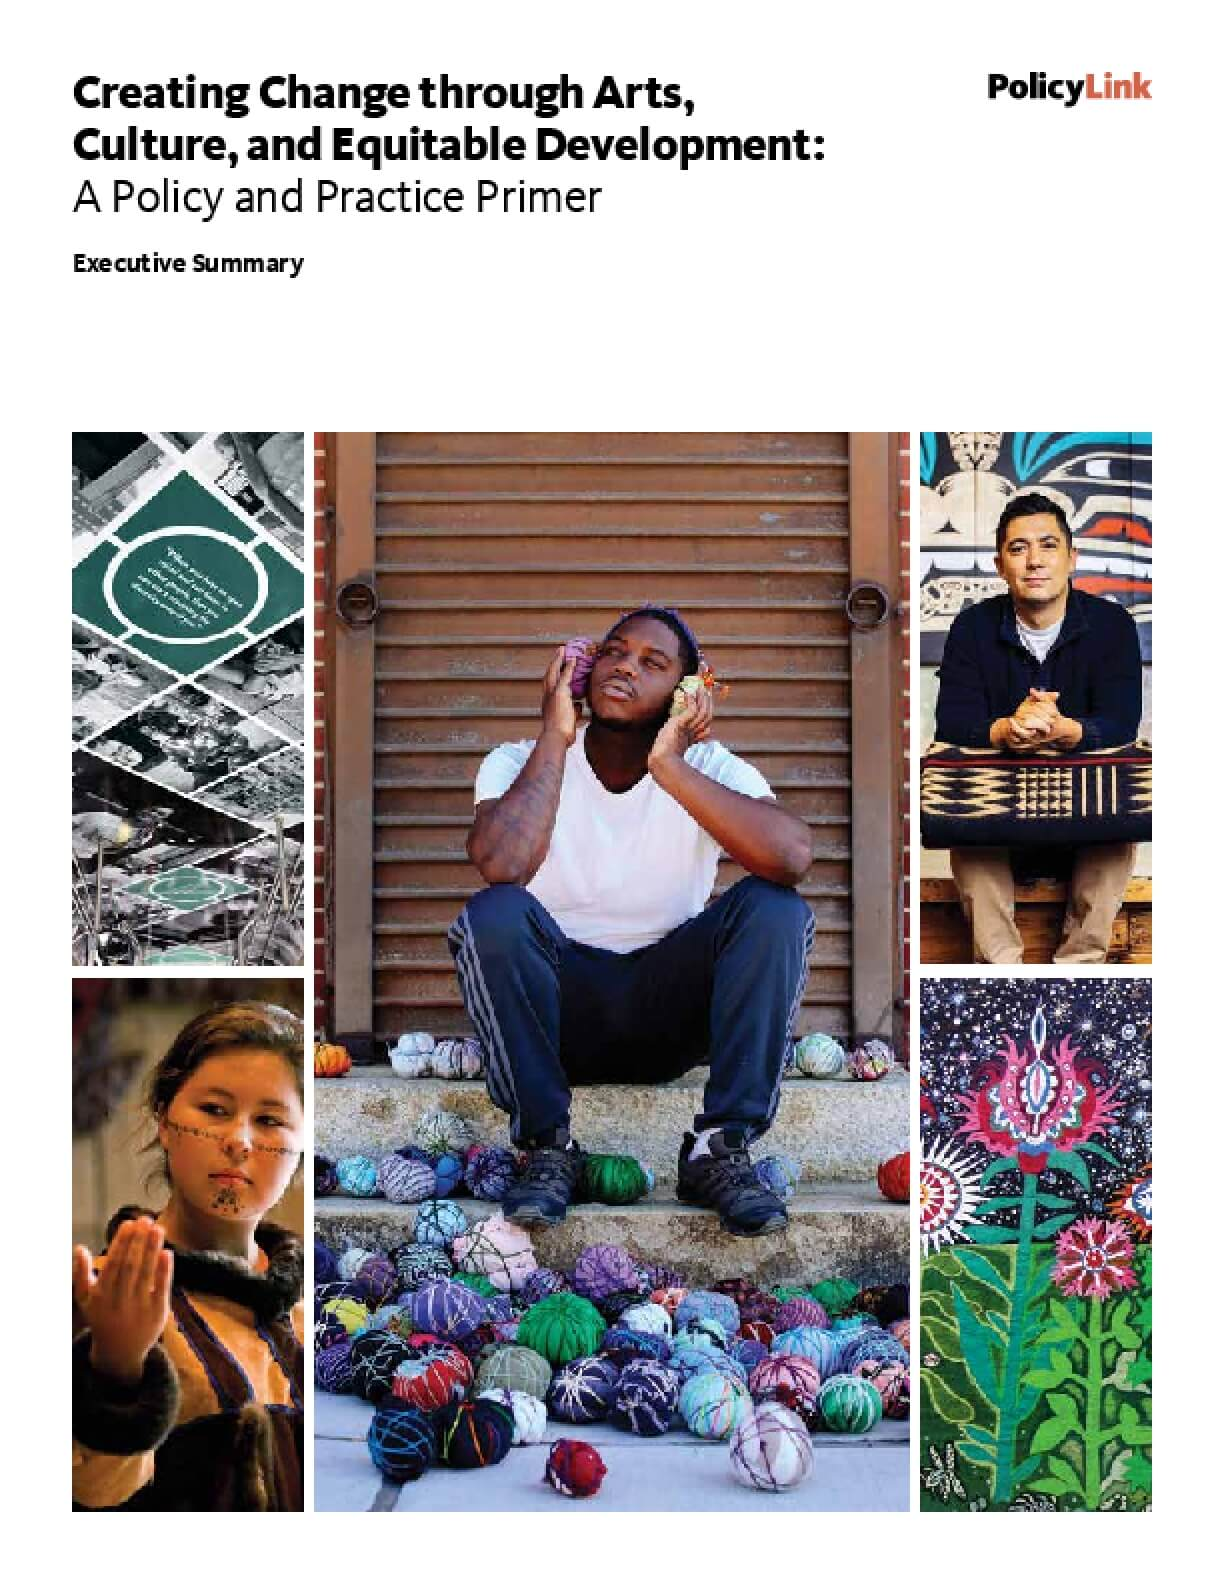 Creating Change through Arts, Culture, and Equitable Development: A Policy and Practice Primer (Executive Summary)